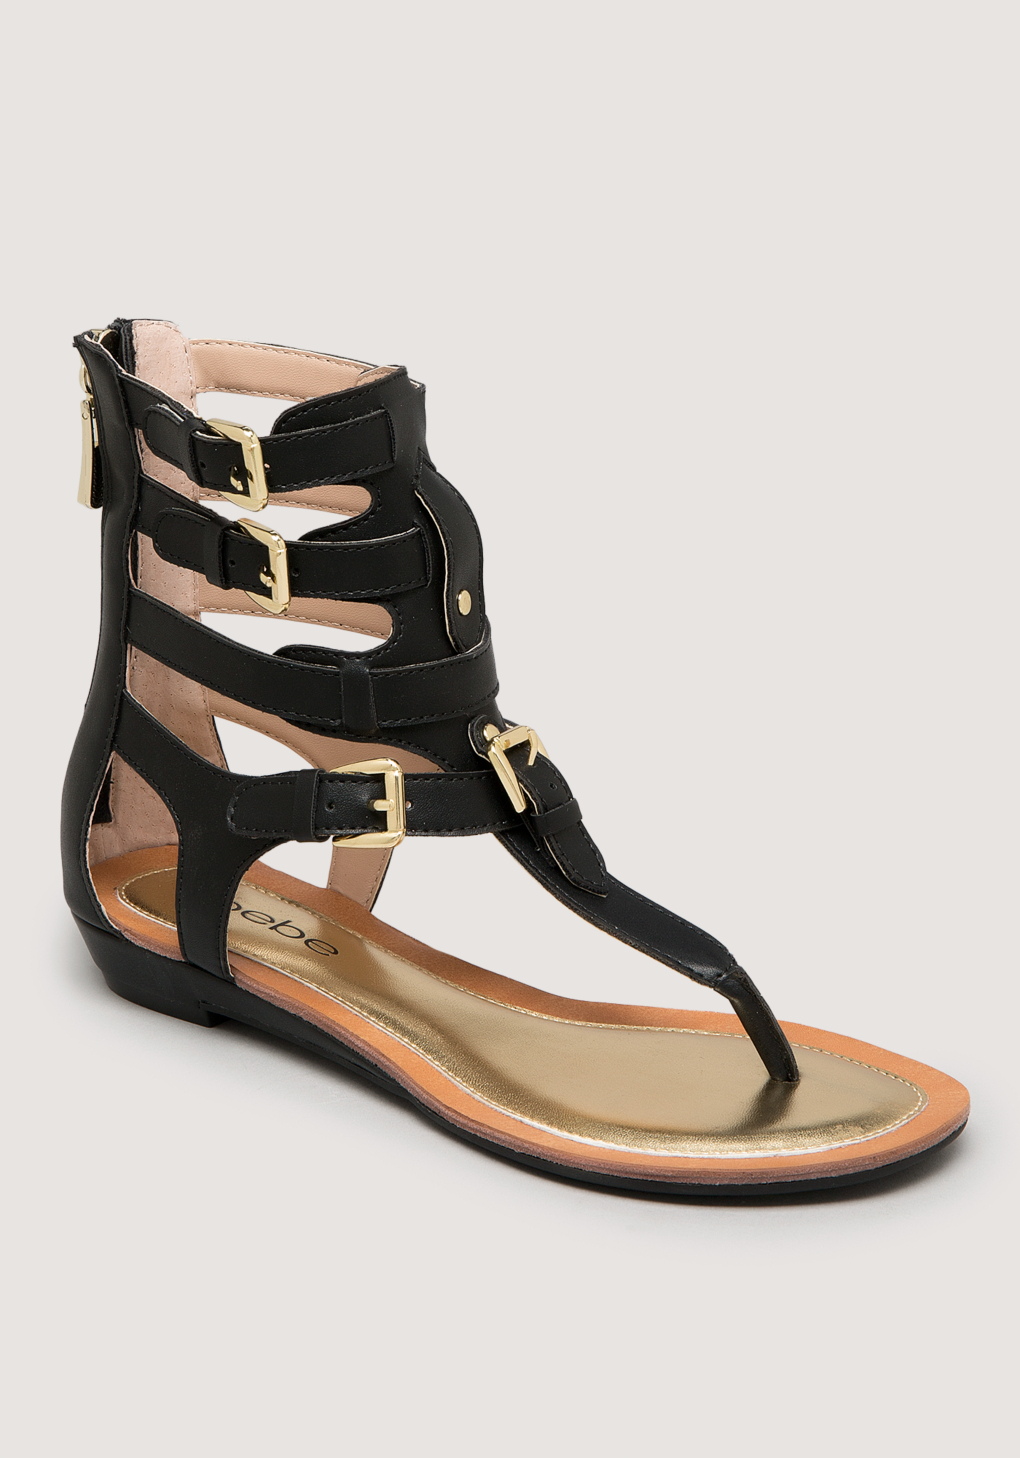 8952f83e47d Lyst - Bebe Dilara Gladiator Sandals in Black